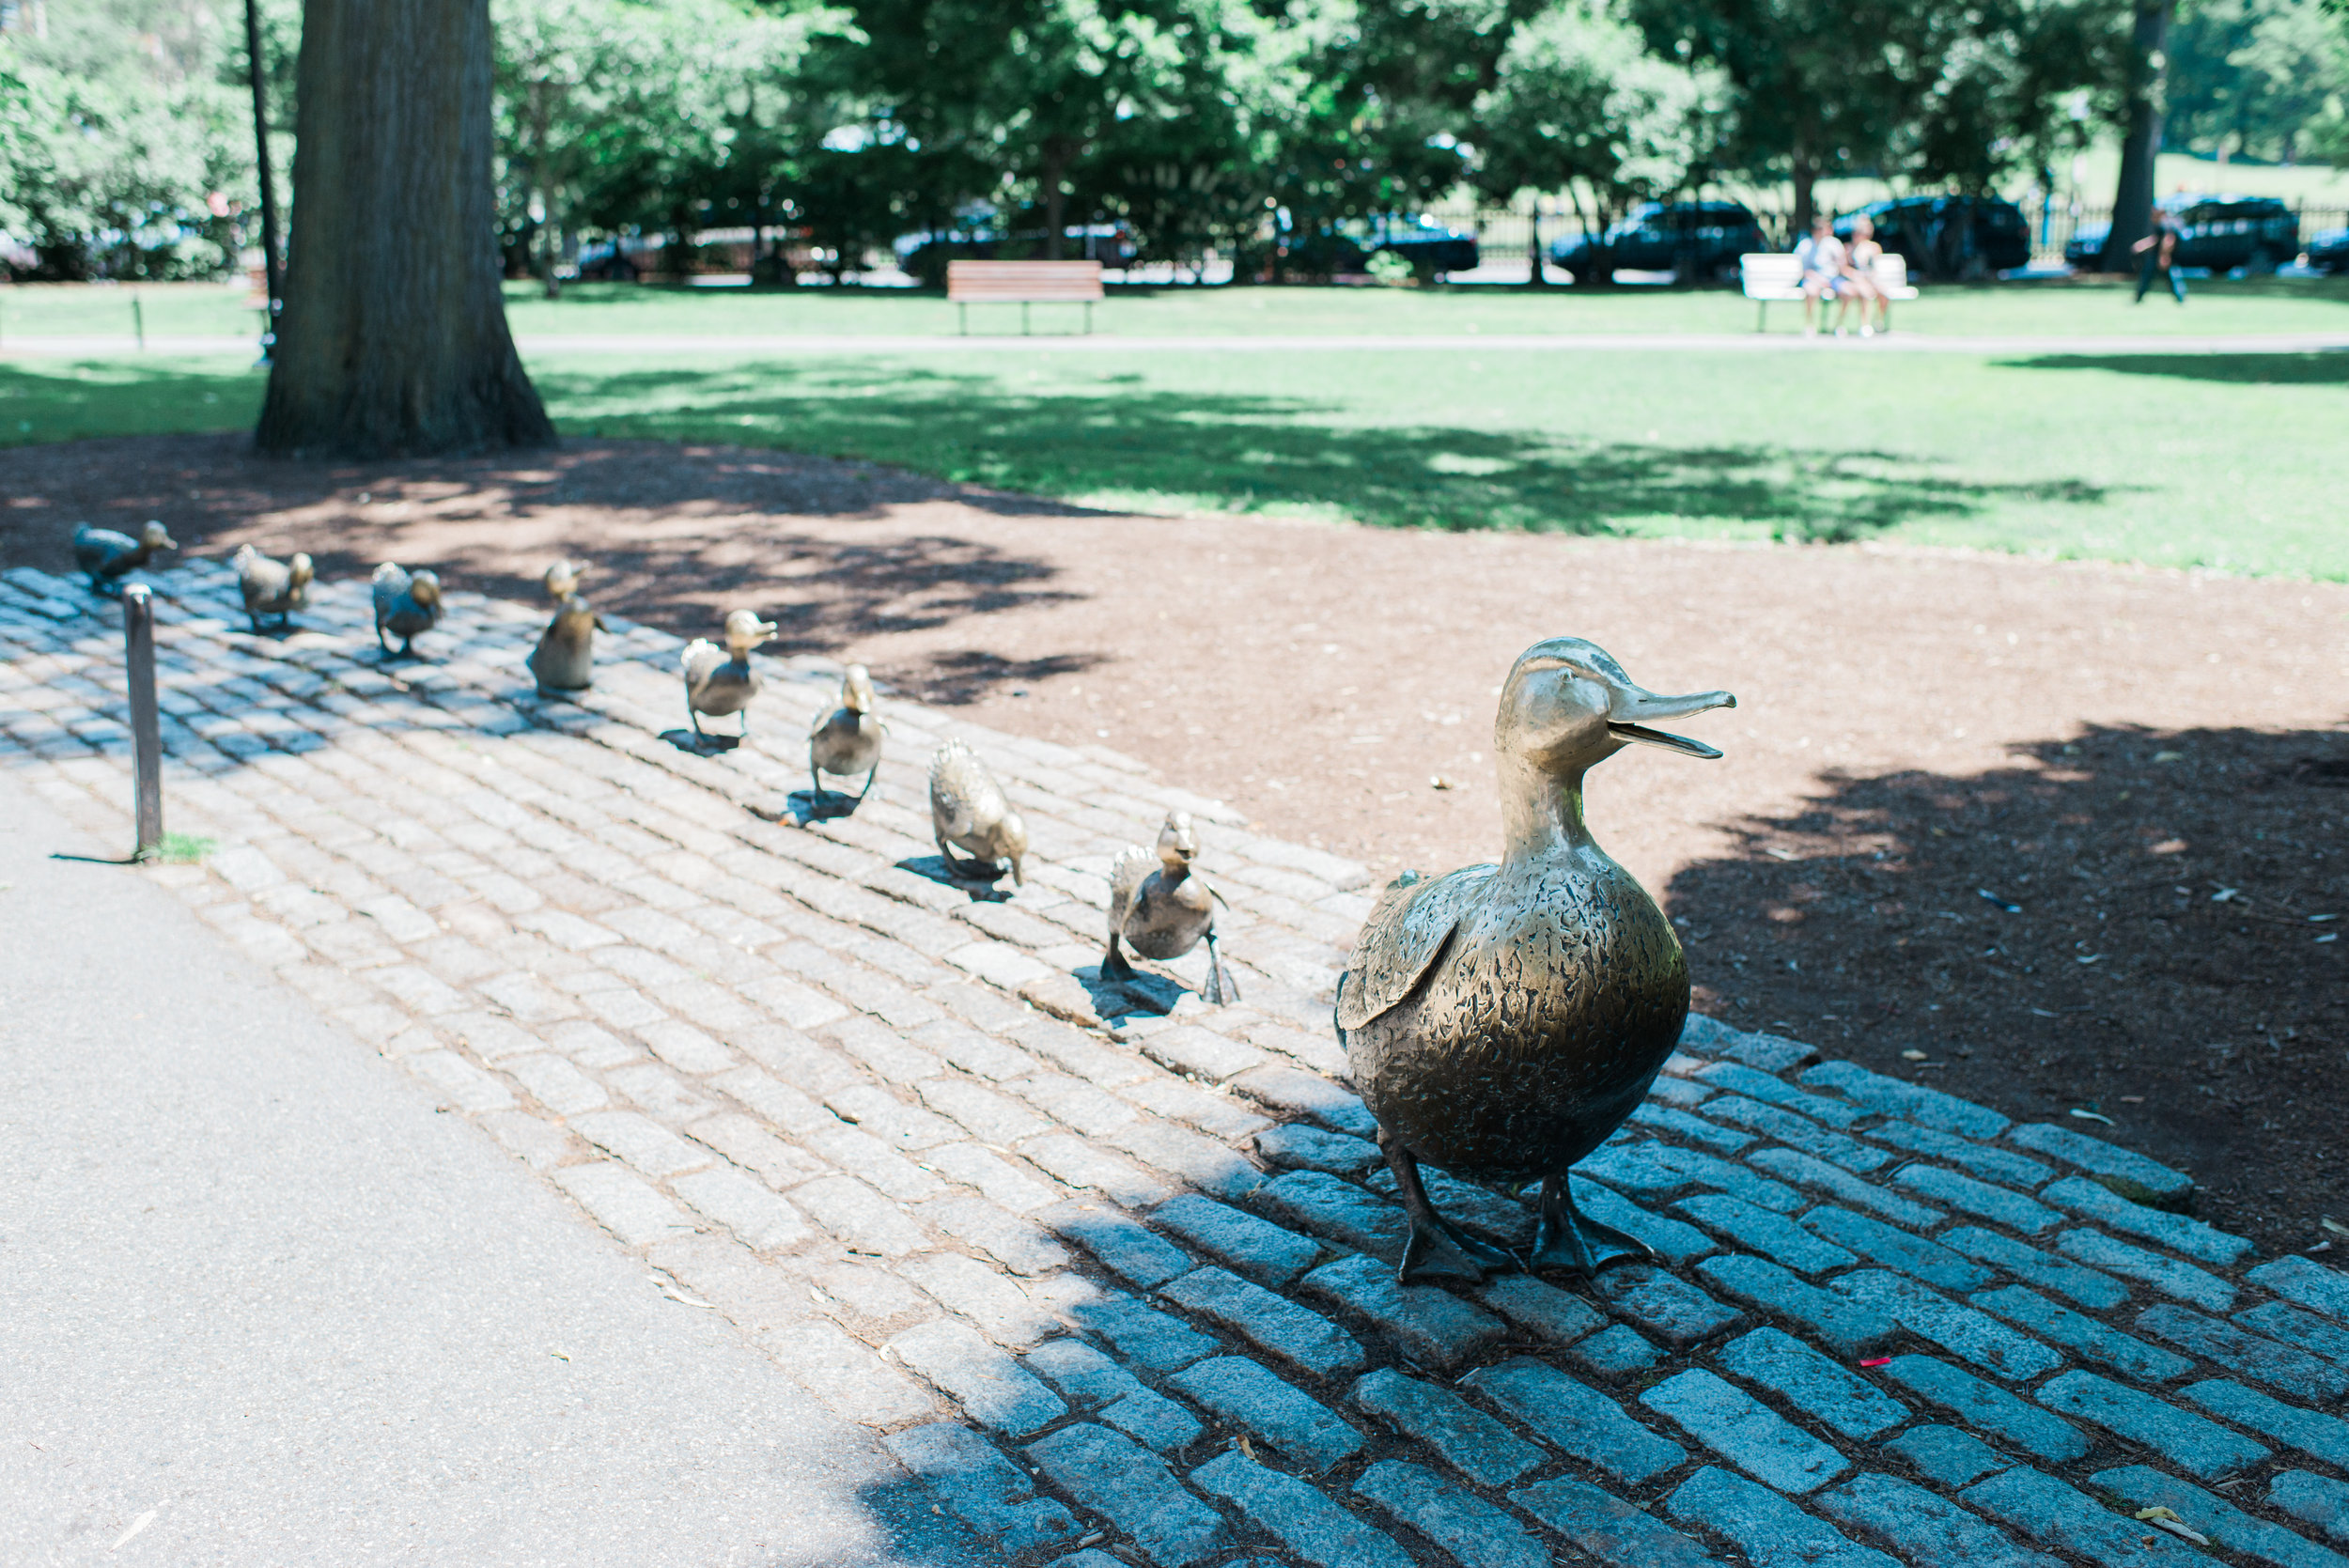 Make Way for Ducklings statue in the Boston Public Garden